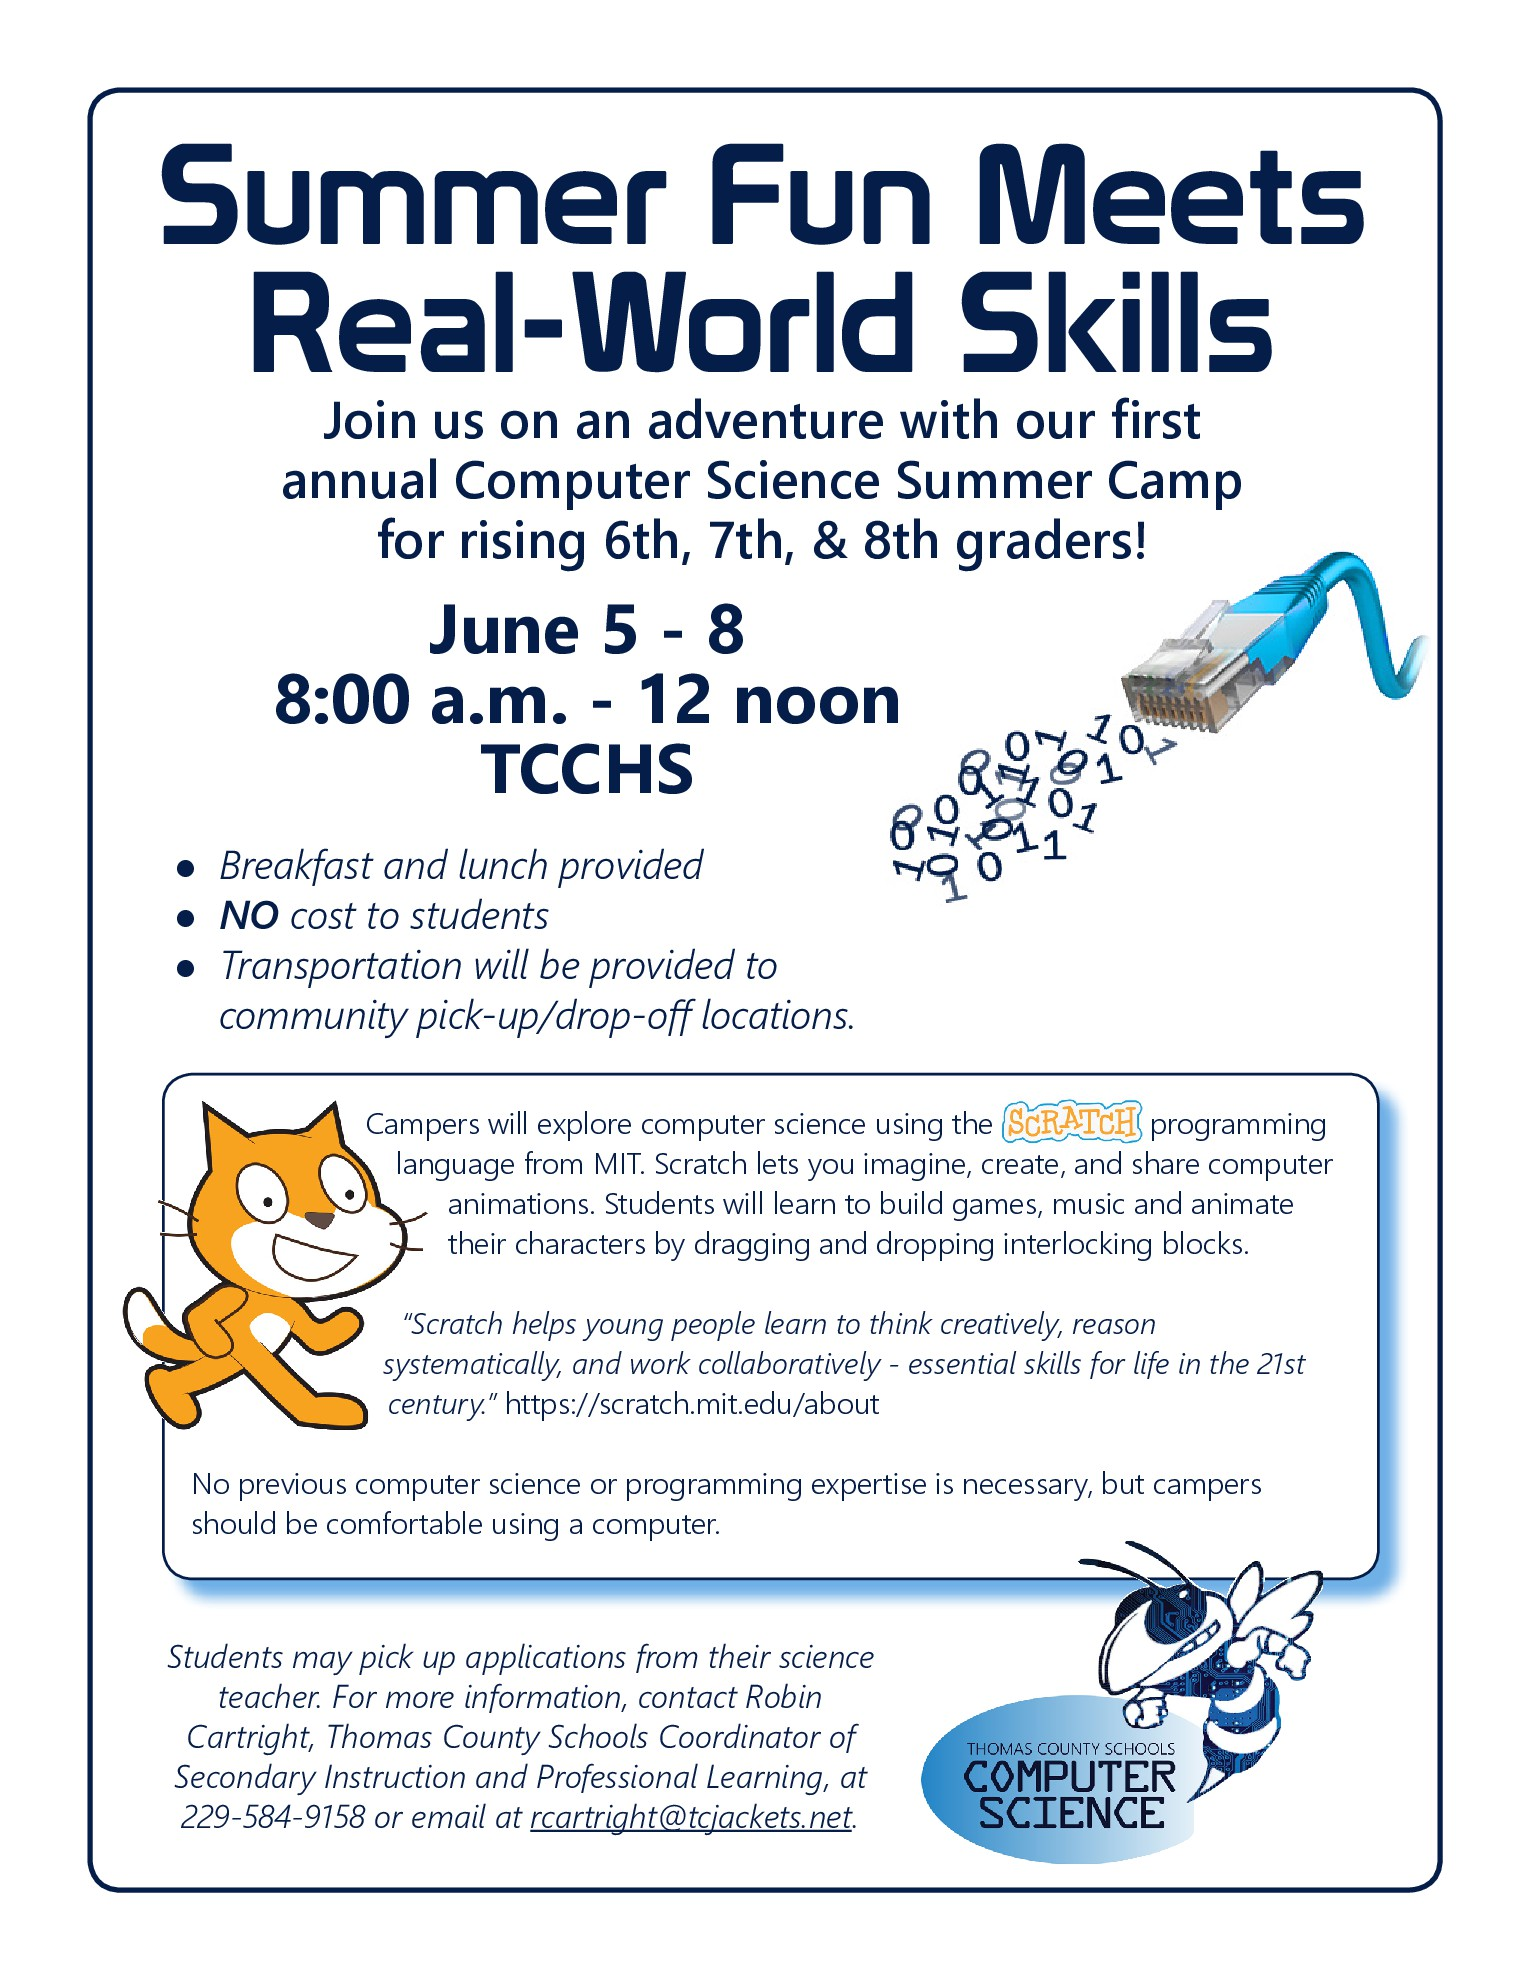 Computer Science Summer Camp Information